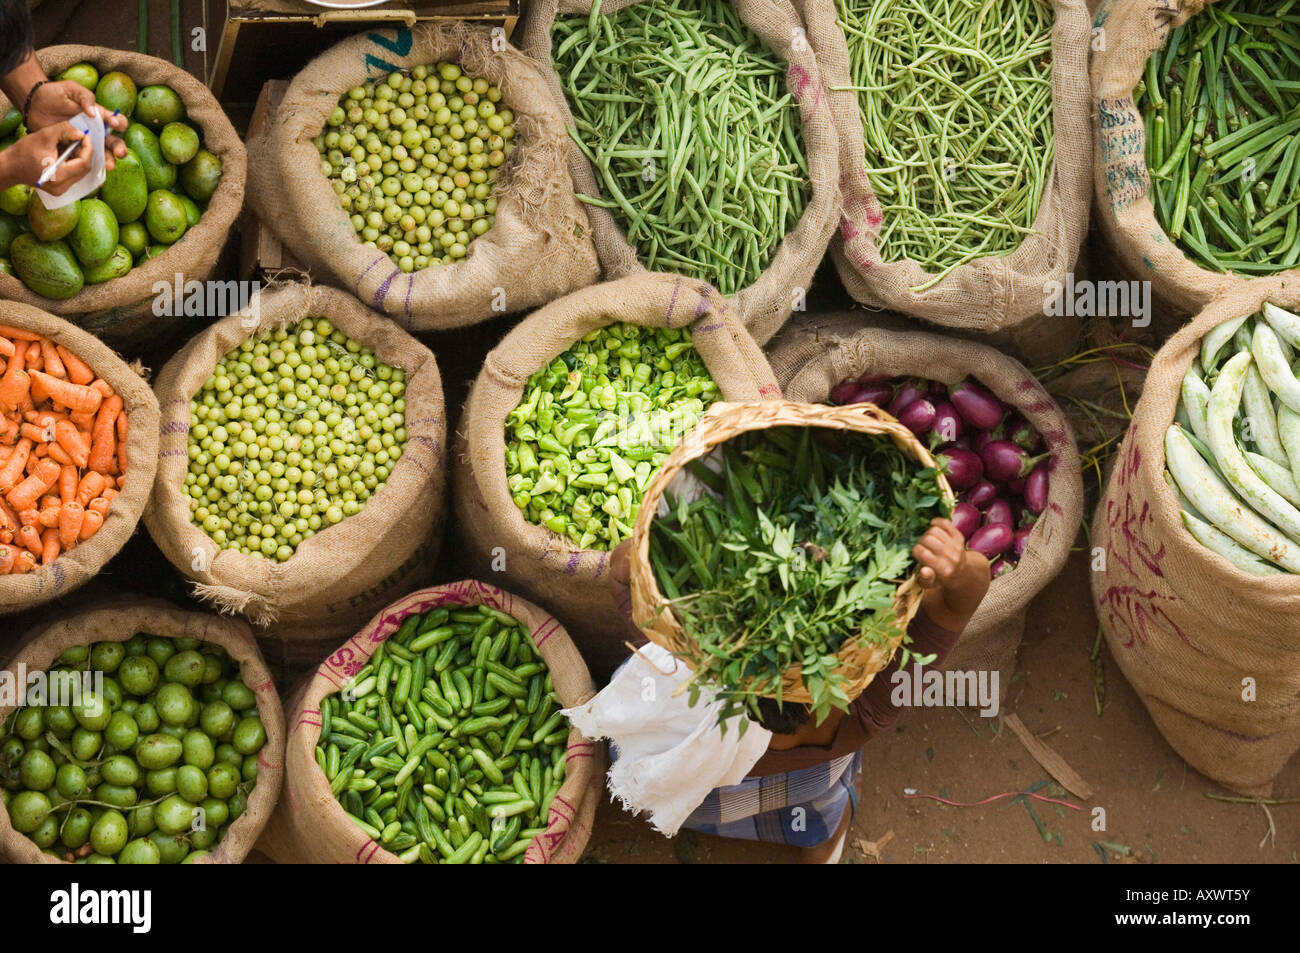 Mercato, Trivandrum, Kerala, India Foto Stock